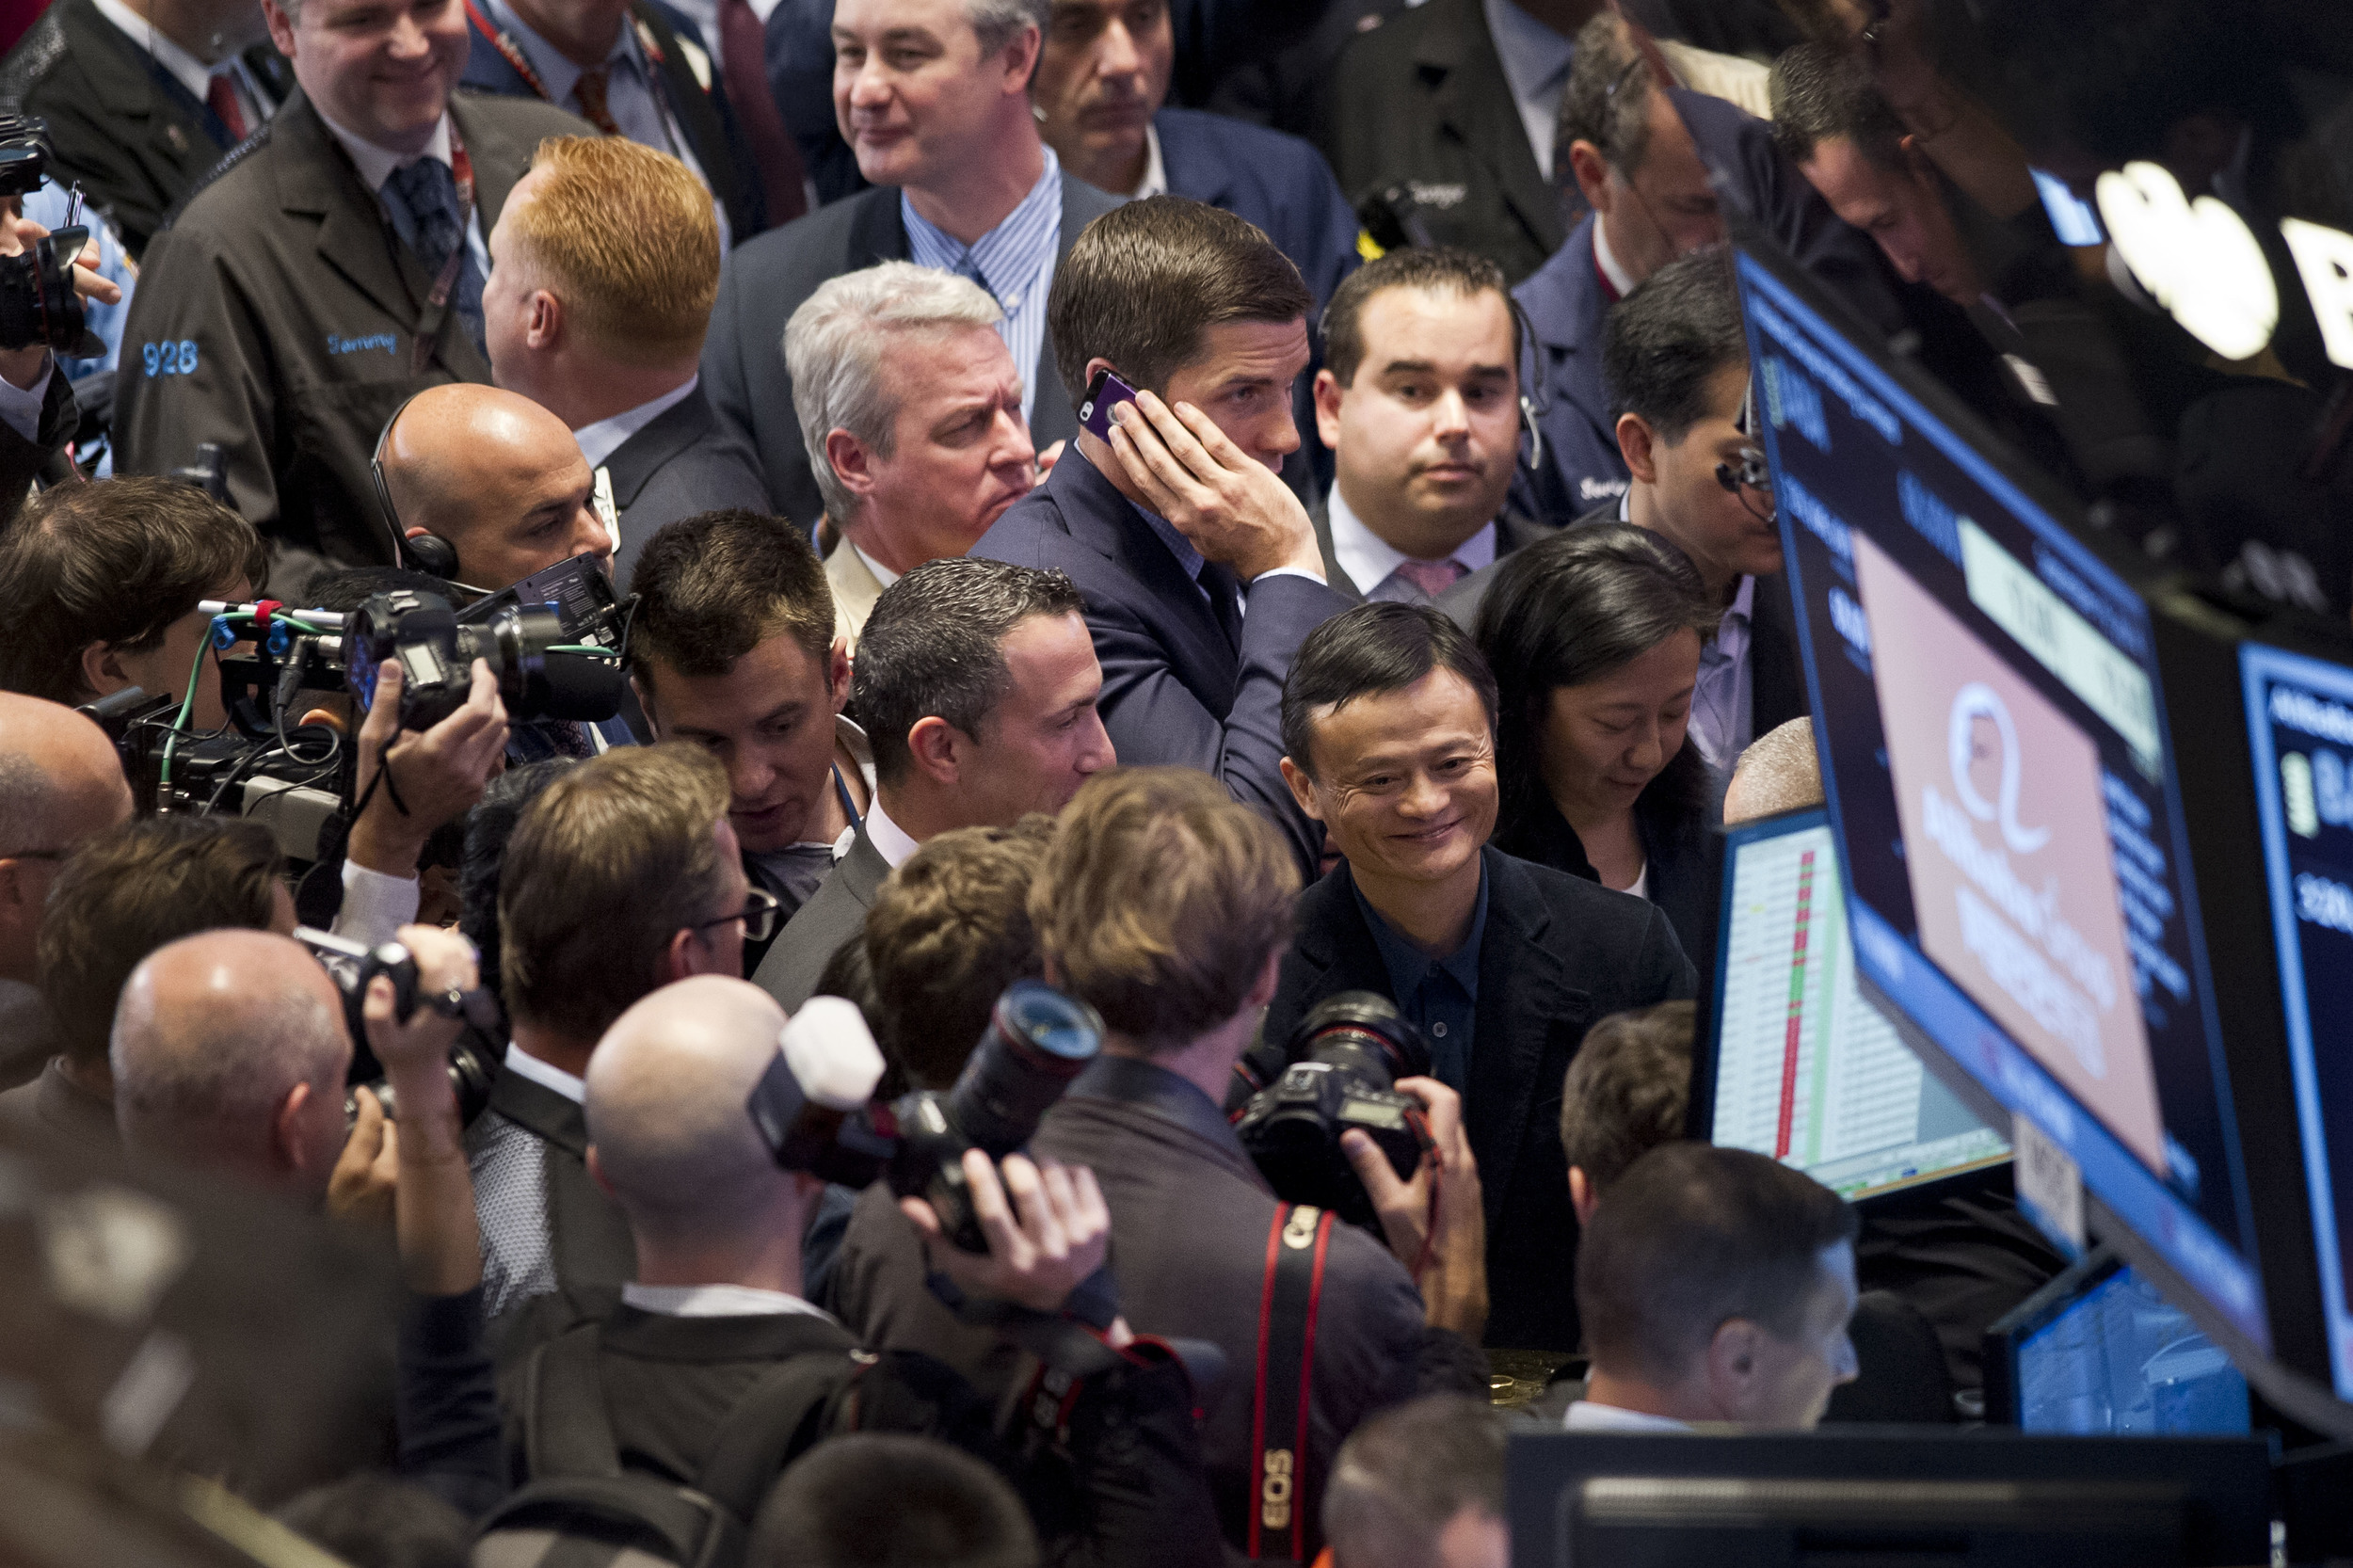 Alibaba CEO Jack Ma smiles calmly as his company brings the Exchange the largest IPO in history with an initial valuation of 25 billion USD.